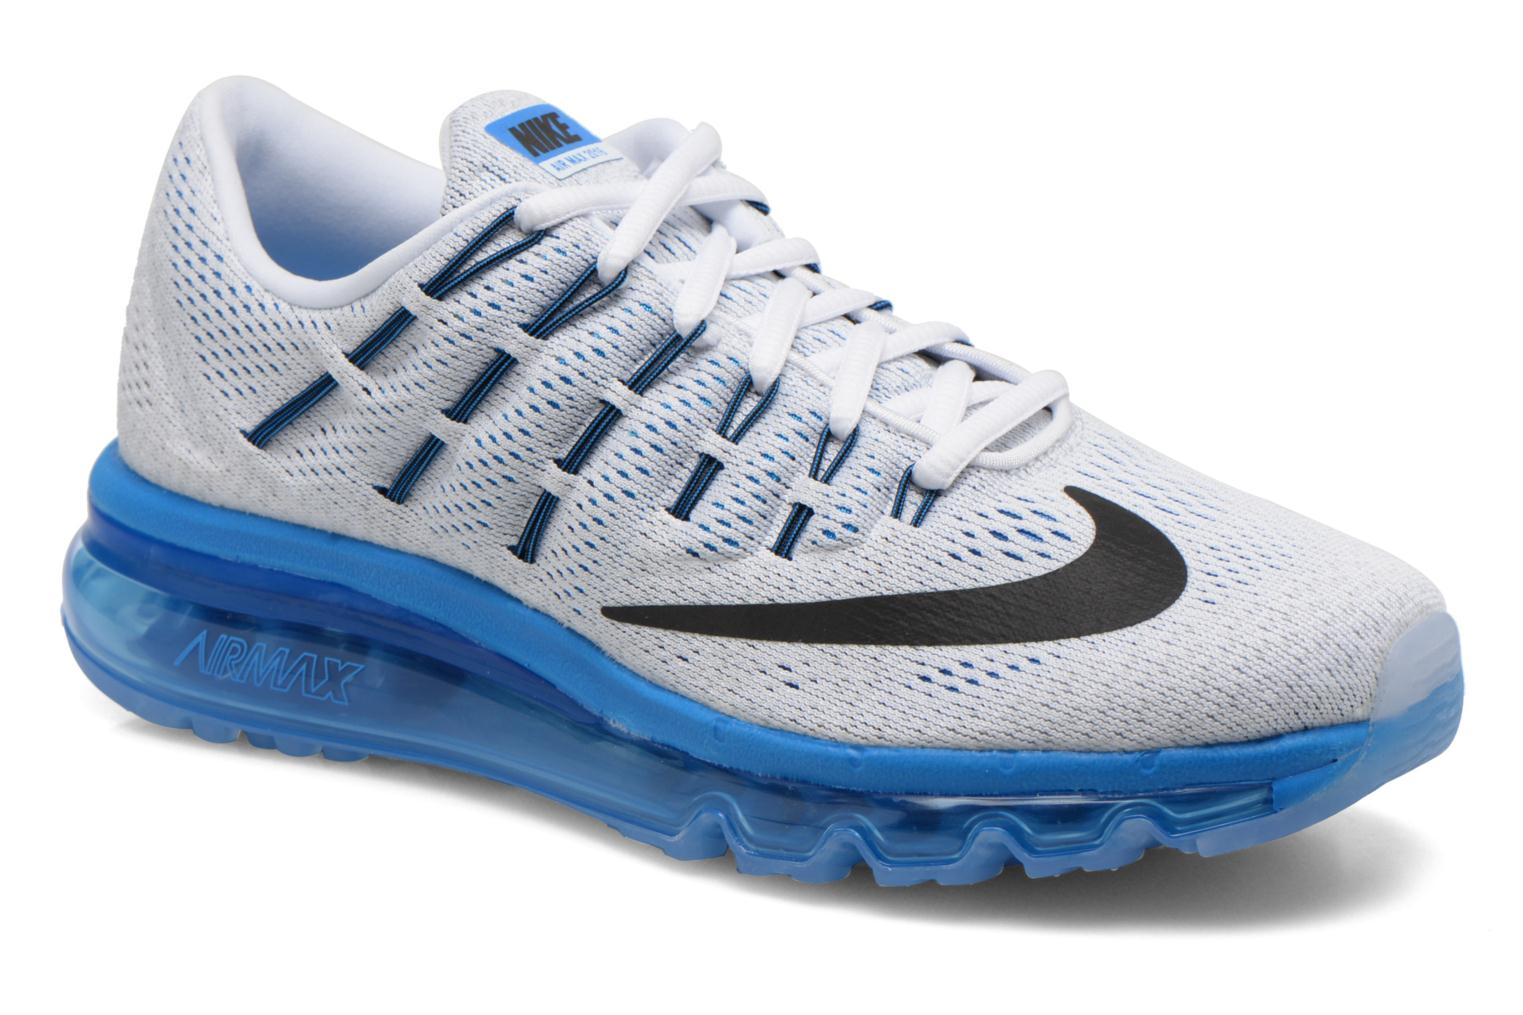 wholesale dealer 6c36b e4333 Nike Air Max 2016 Wit Met Blauwe Zool